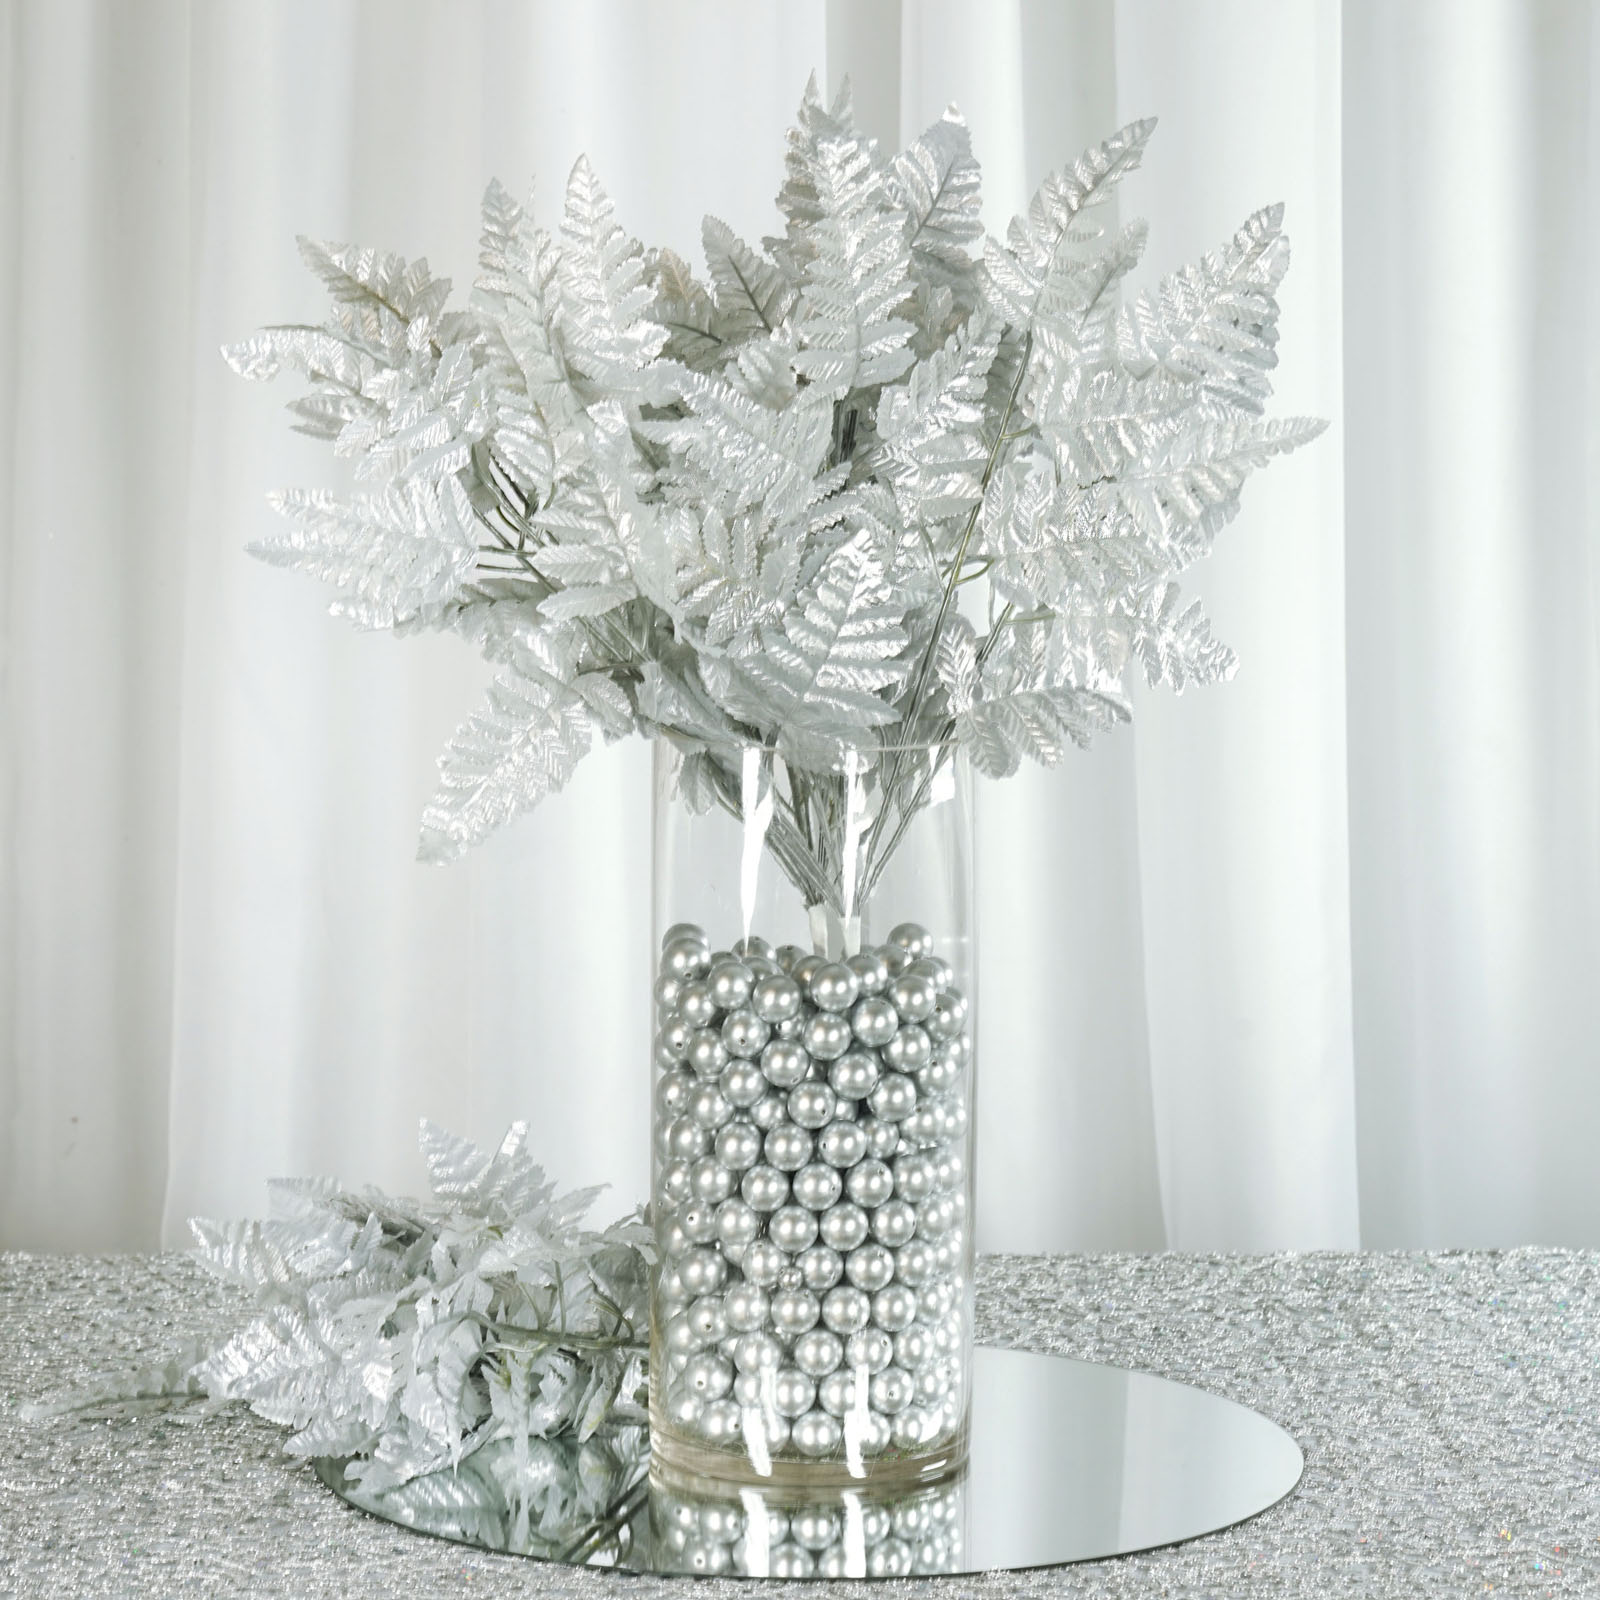 432 Leaves Leather Fern Greenery Branches - 36 bushes for Wedding ...